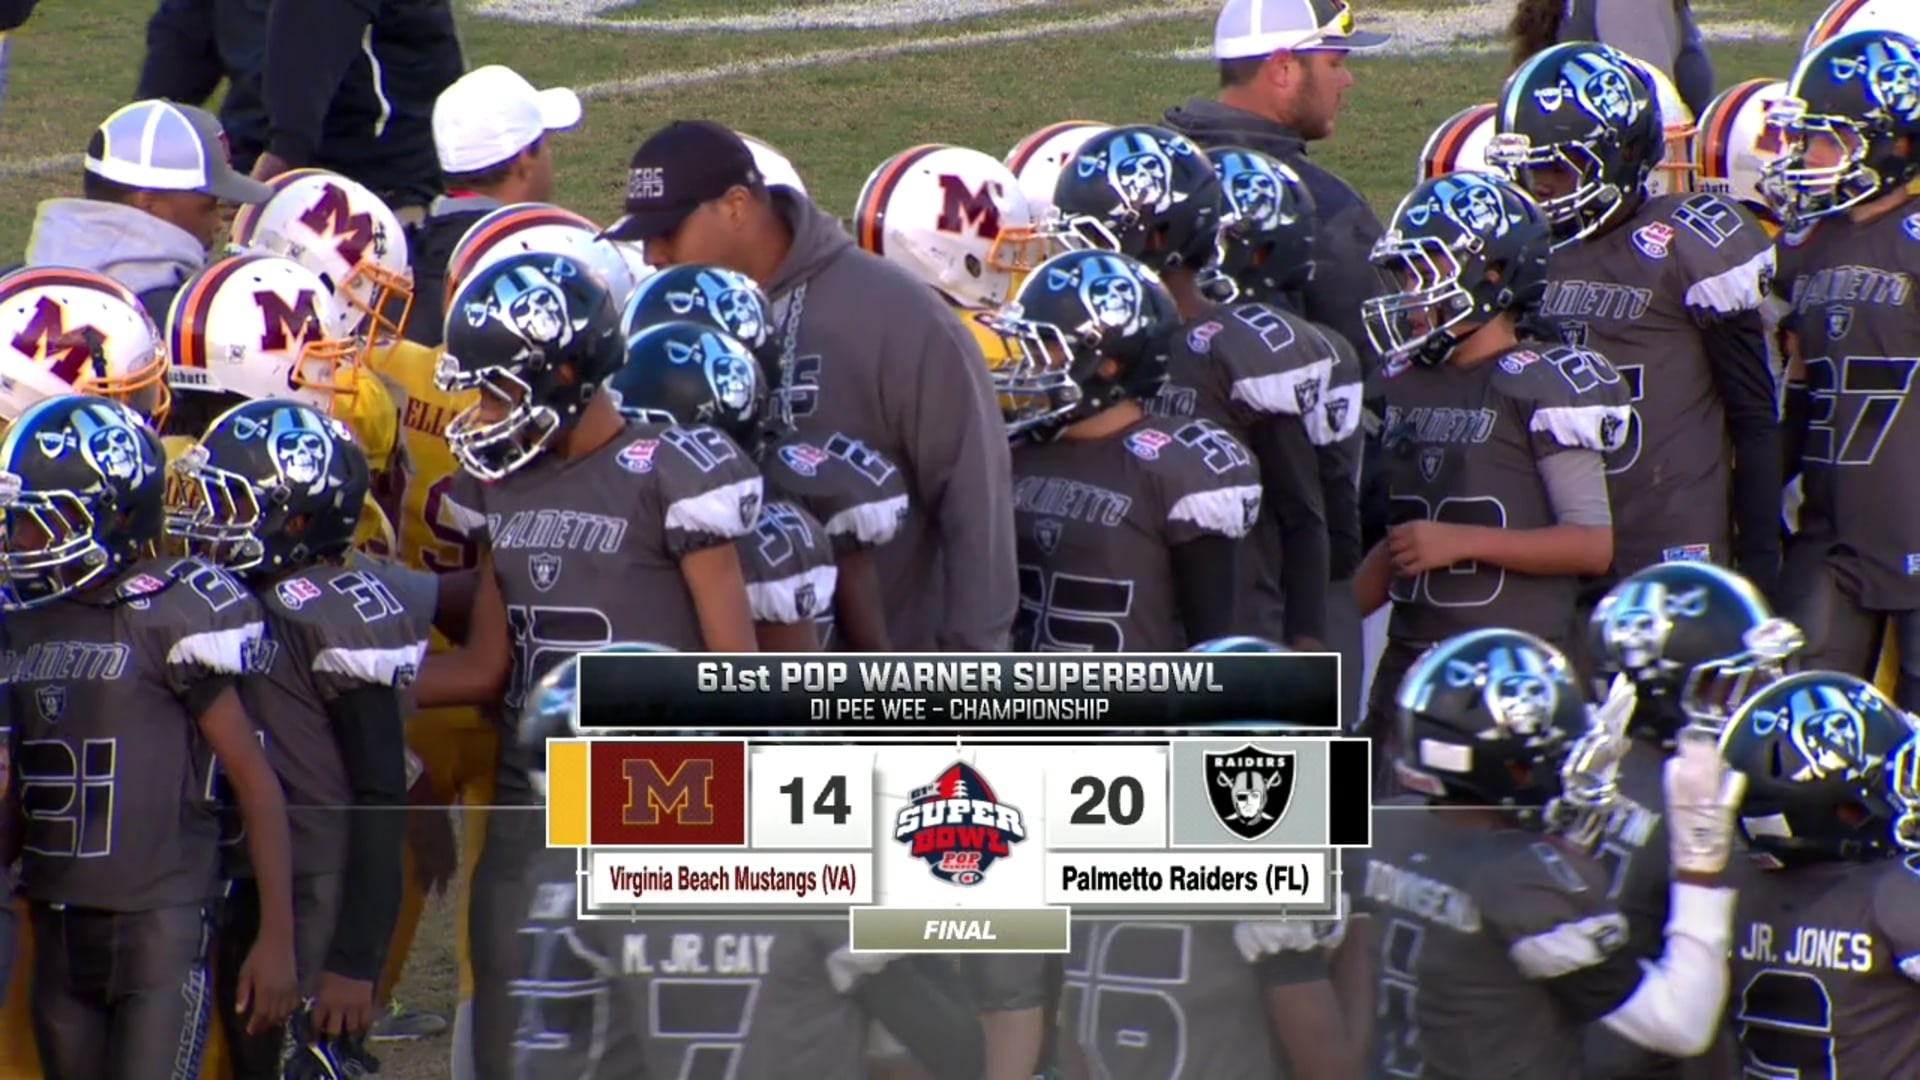 Pop Warner Super Bowl: Palmetto Raiders Championship with Pop Warner Super Bowl